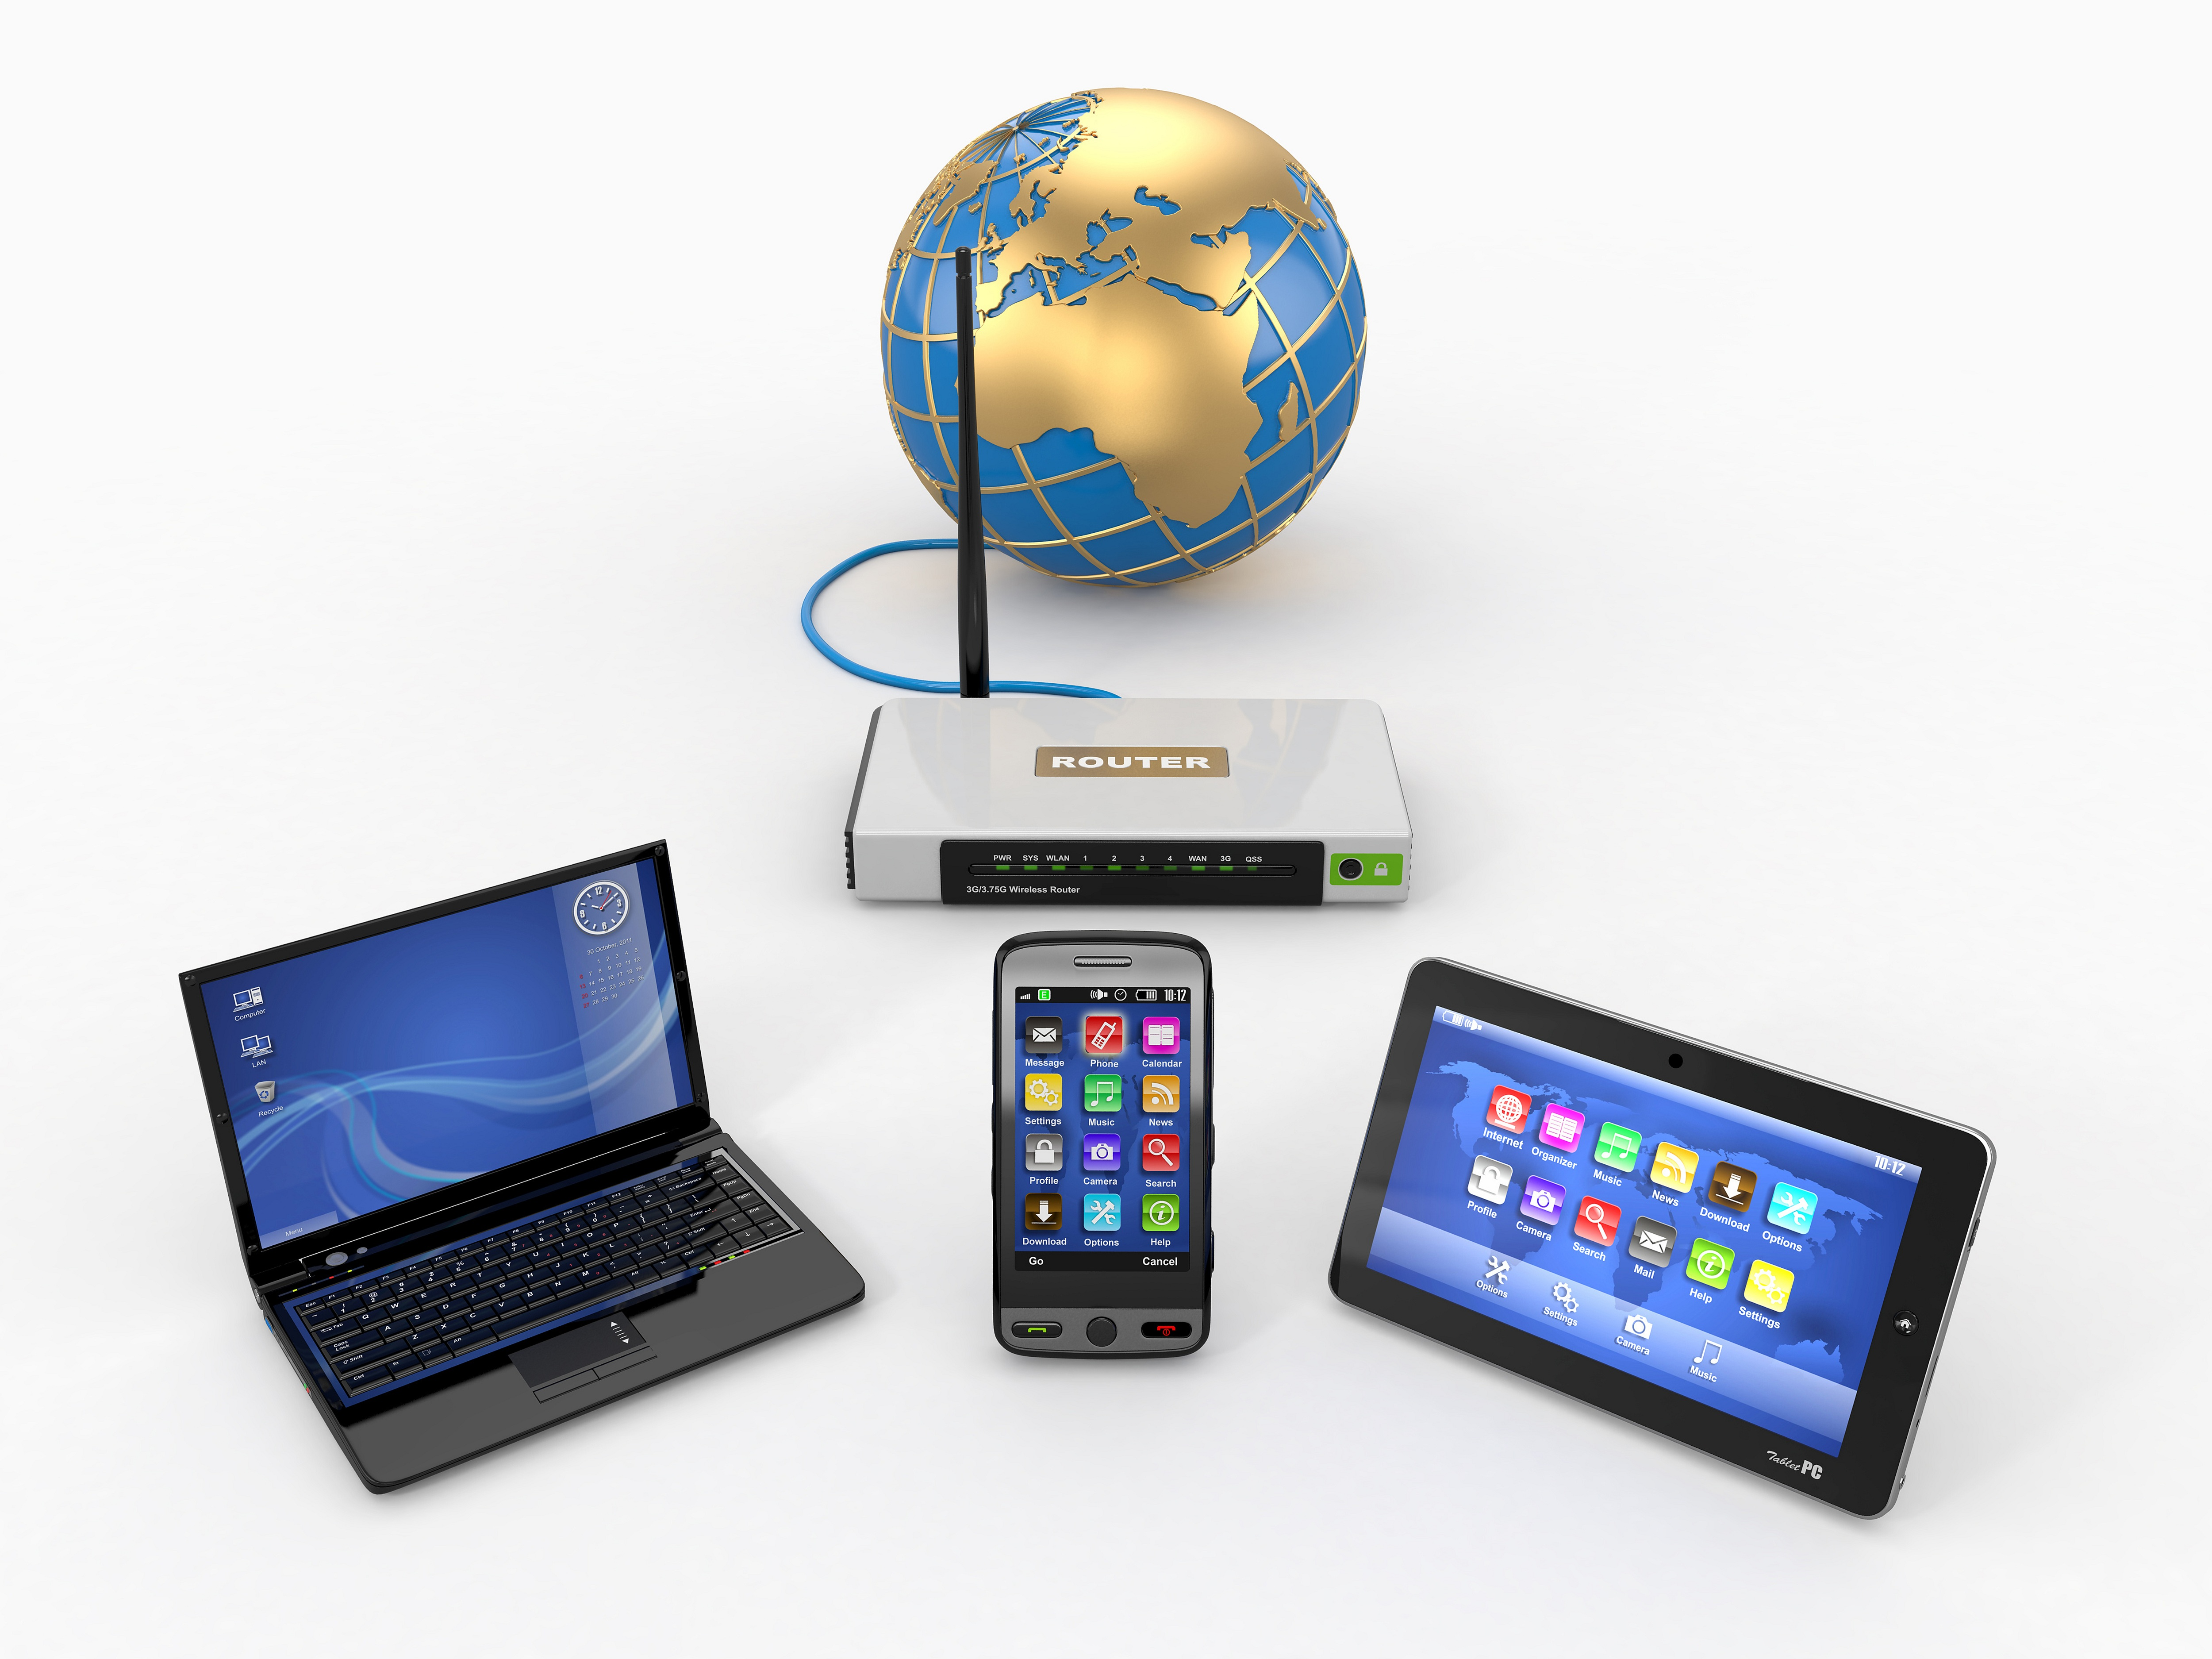 Introduction-to-ADSL-high-speed-internet-technology.jpg